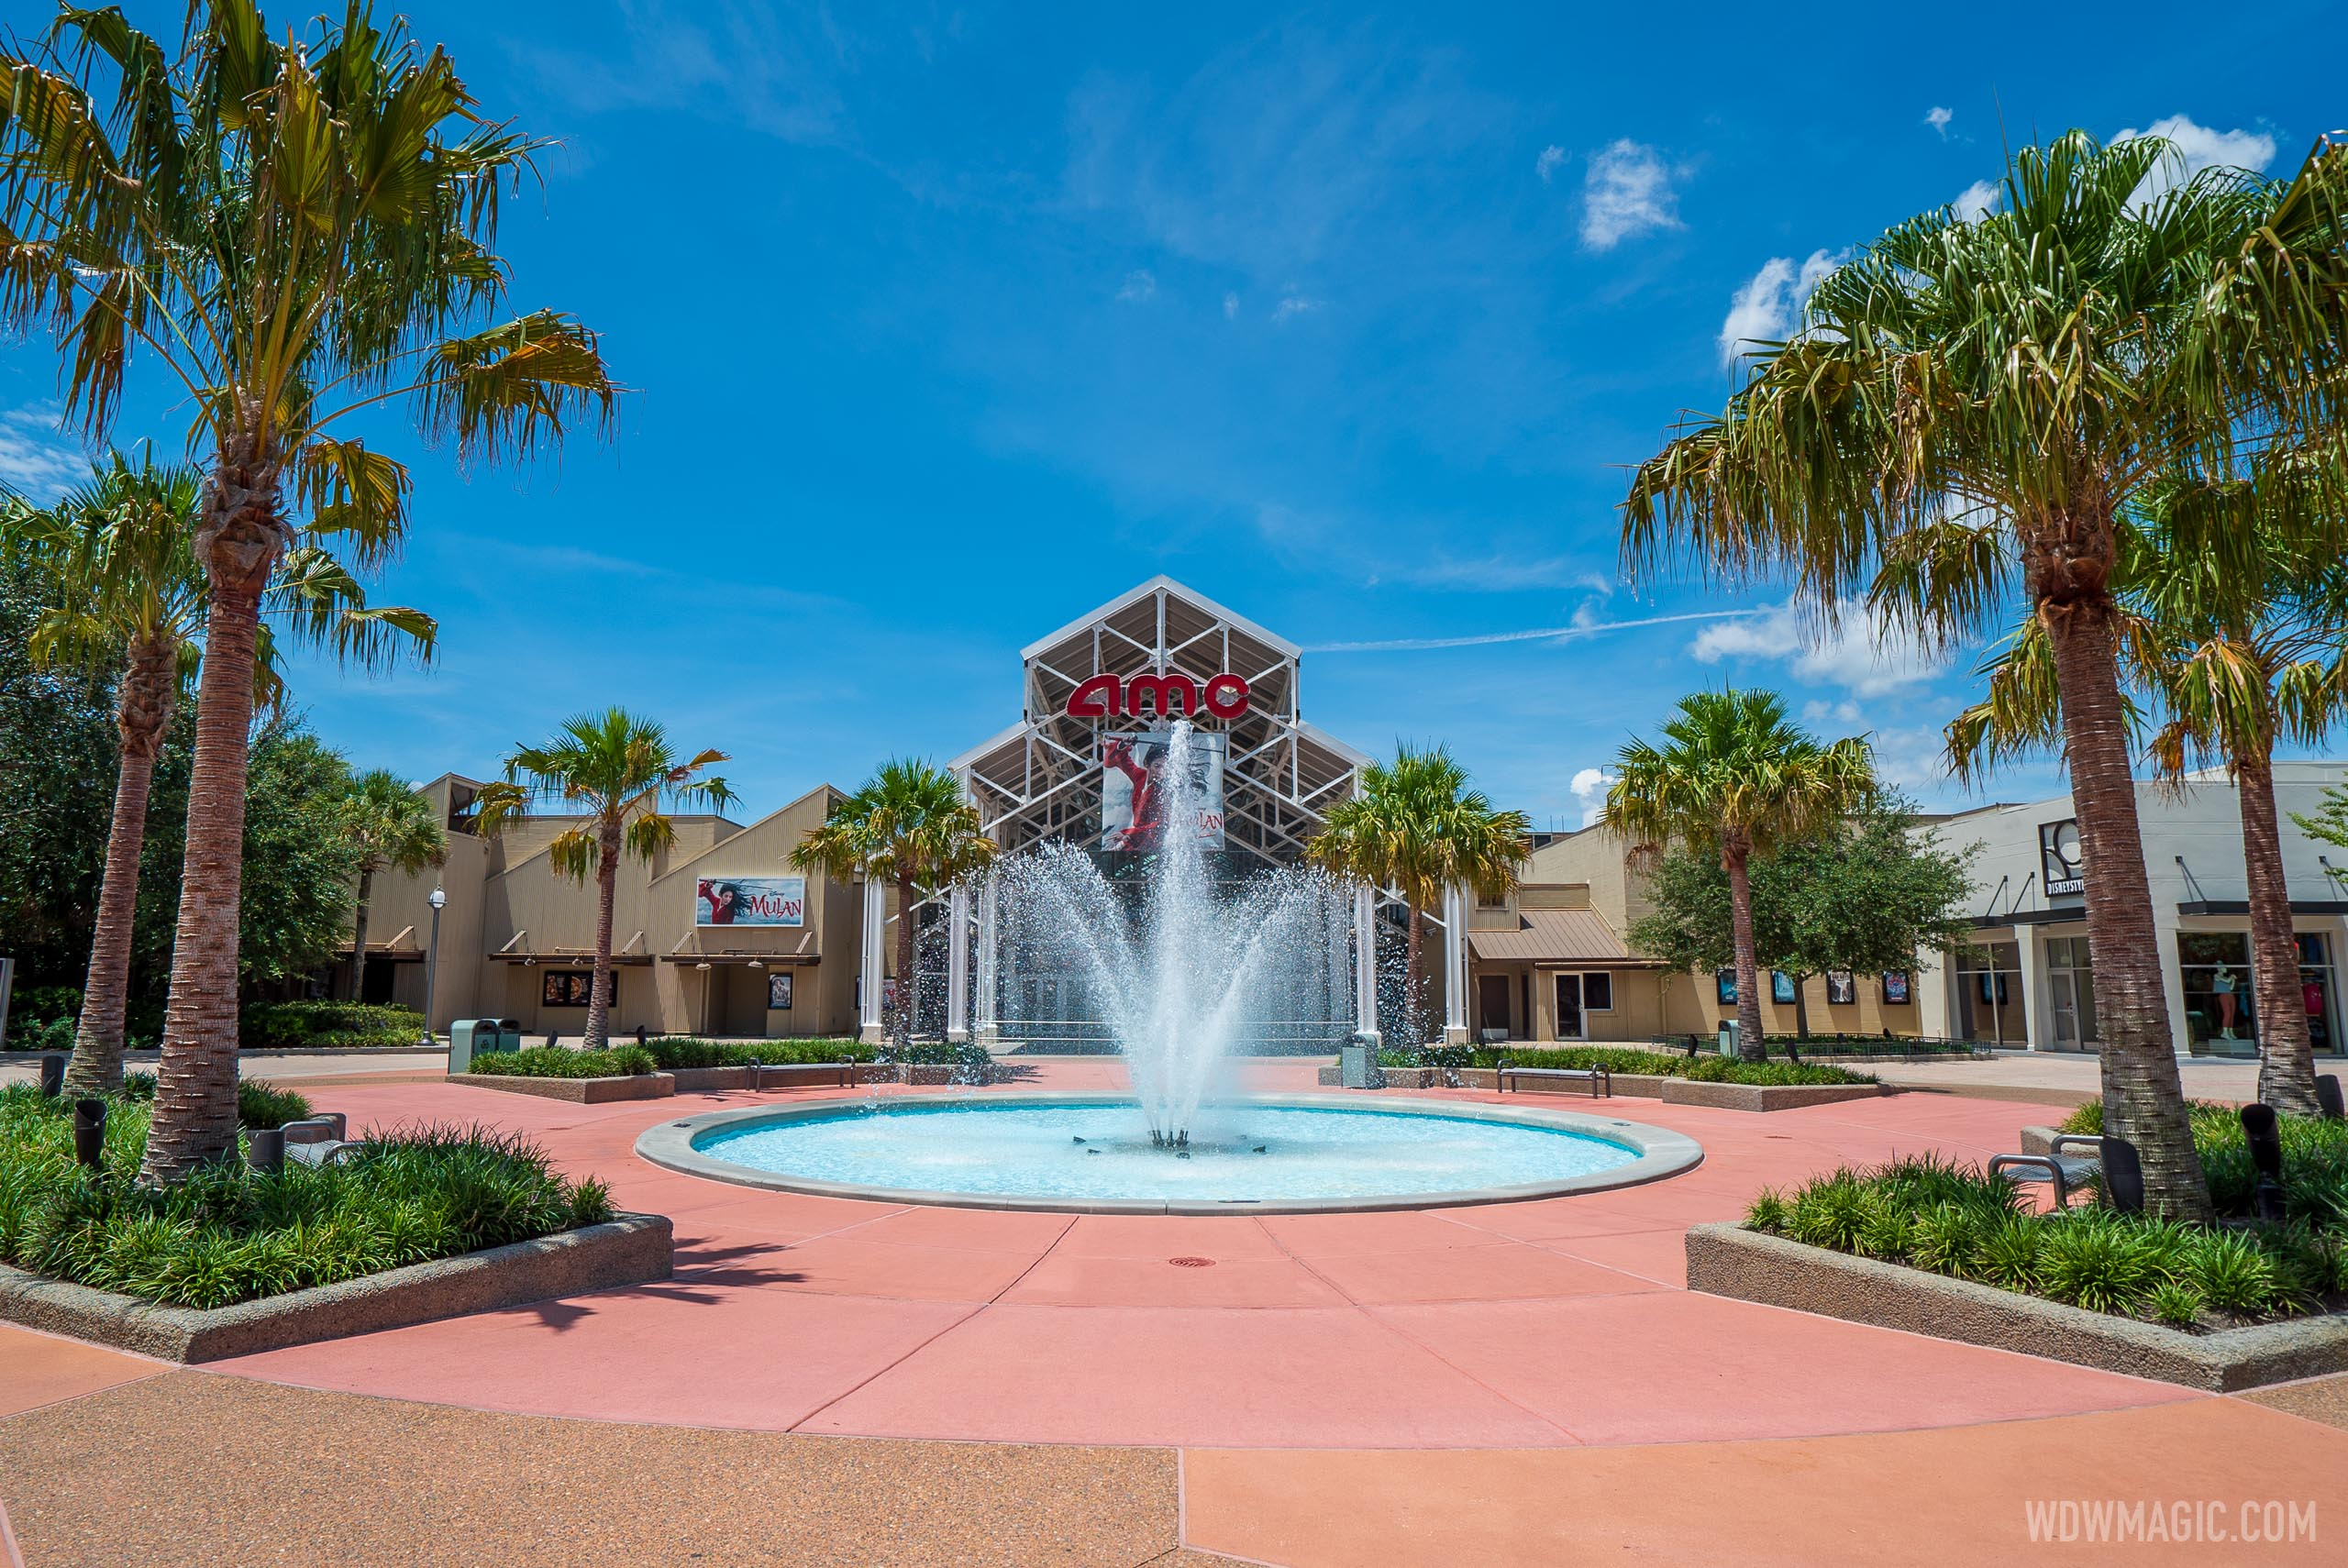 AMC Disney Springs 24 to open August 20 with 15 cent tickets